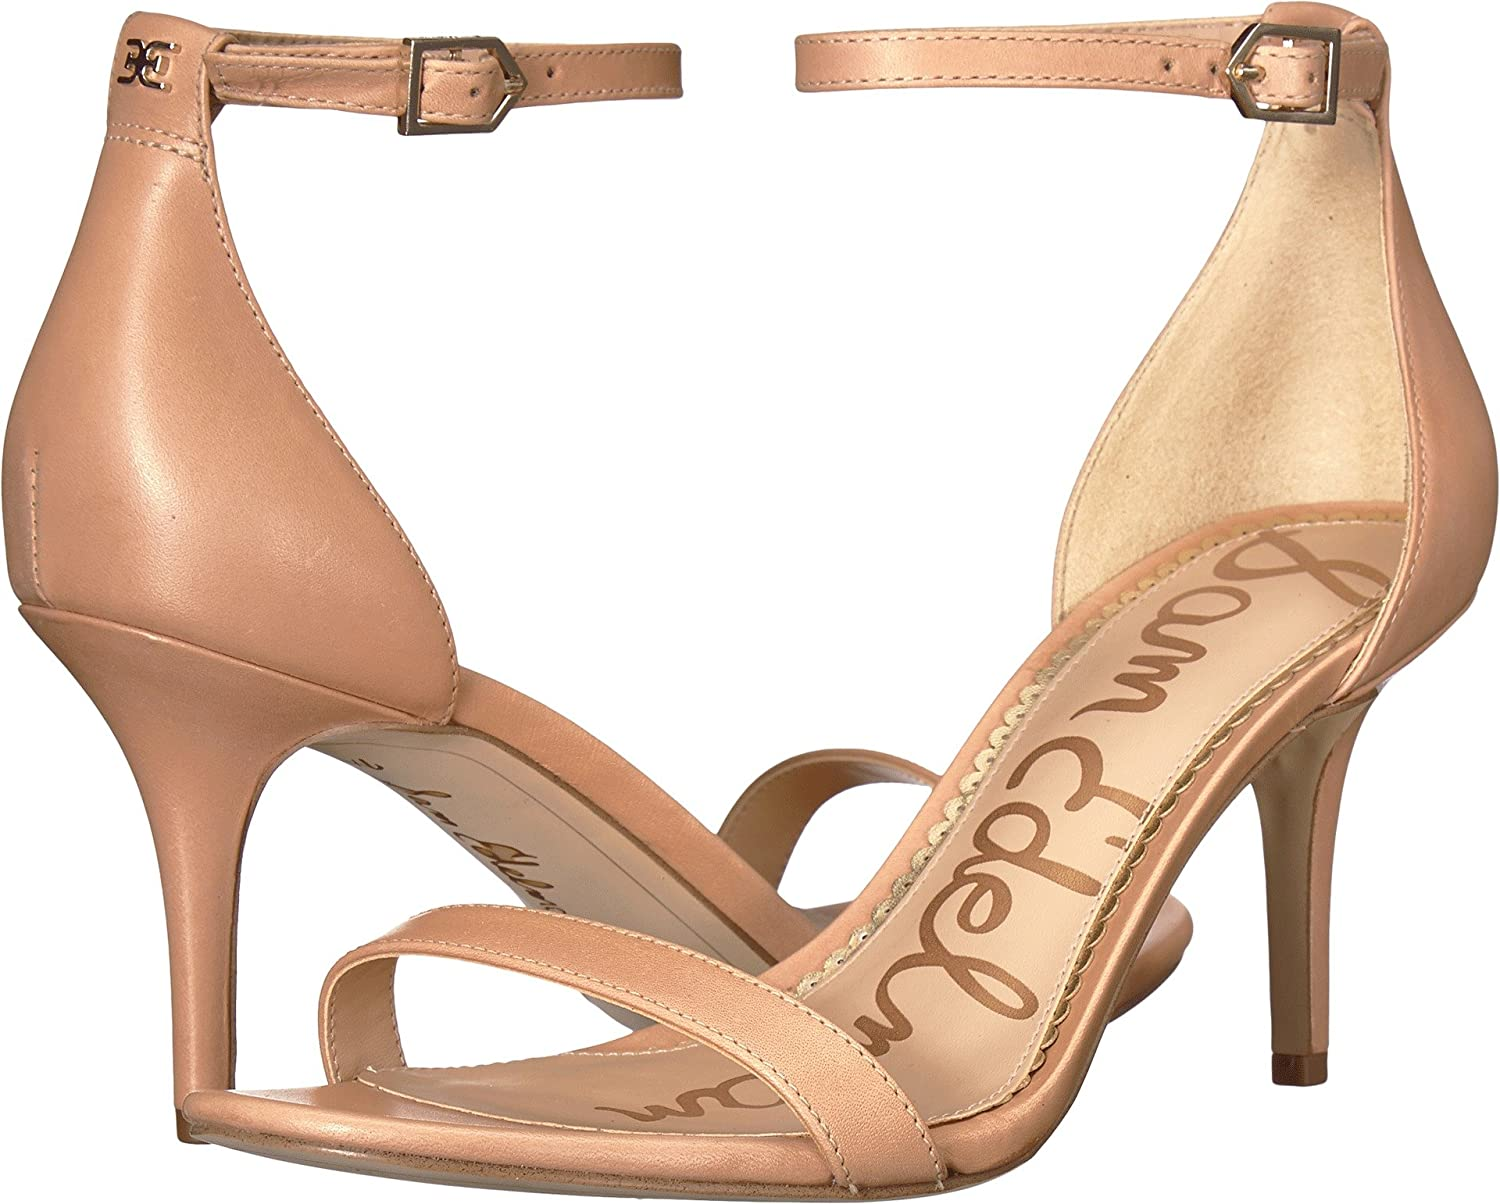 Sam Edelman Women's Patti Dress Sandal B078WGLJLD 10 B(M) US|Buff Nude Vaquero Saddle Leather